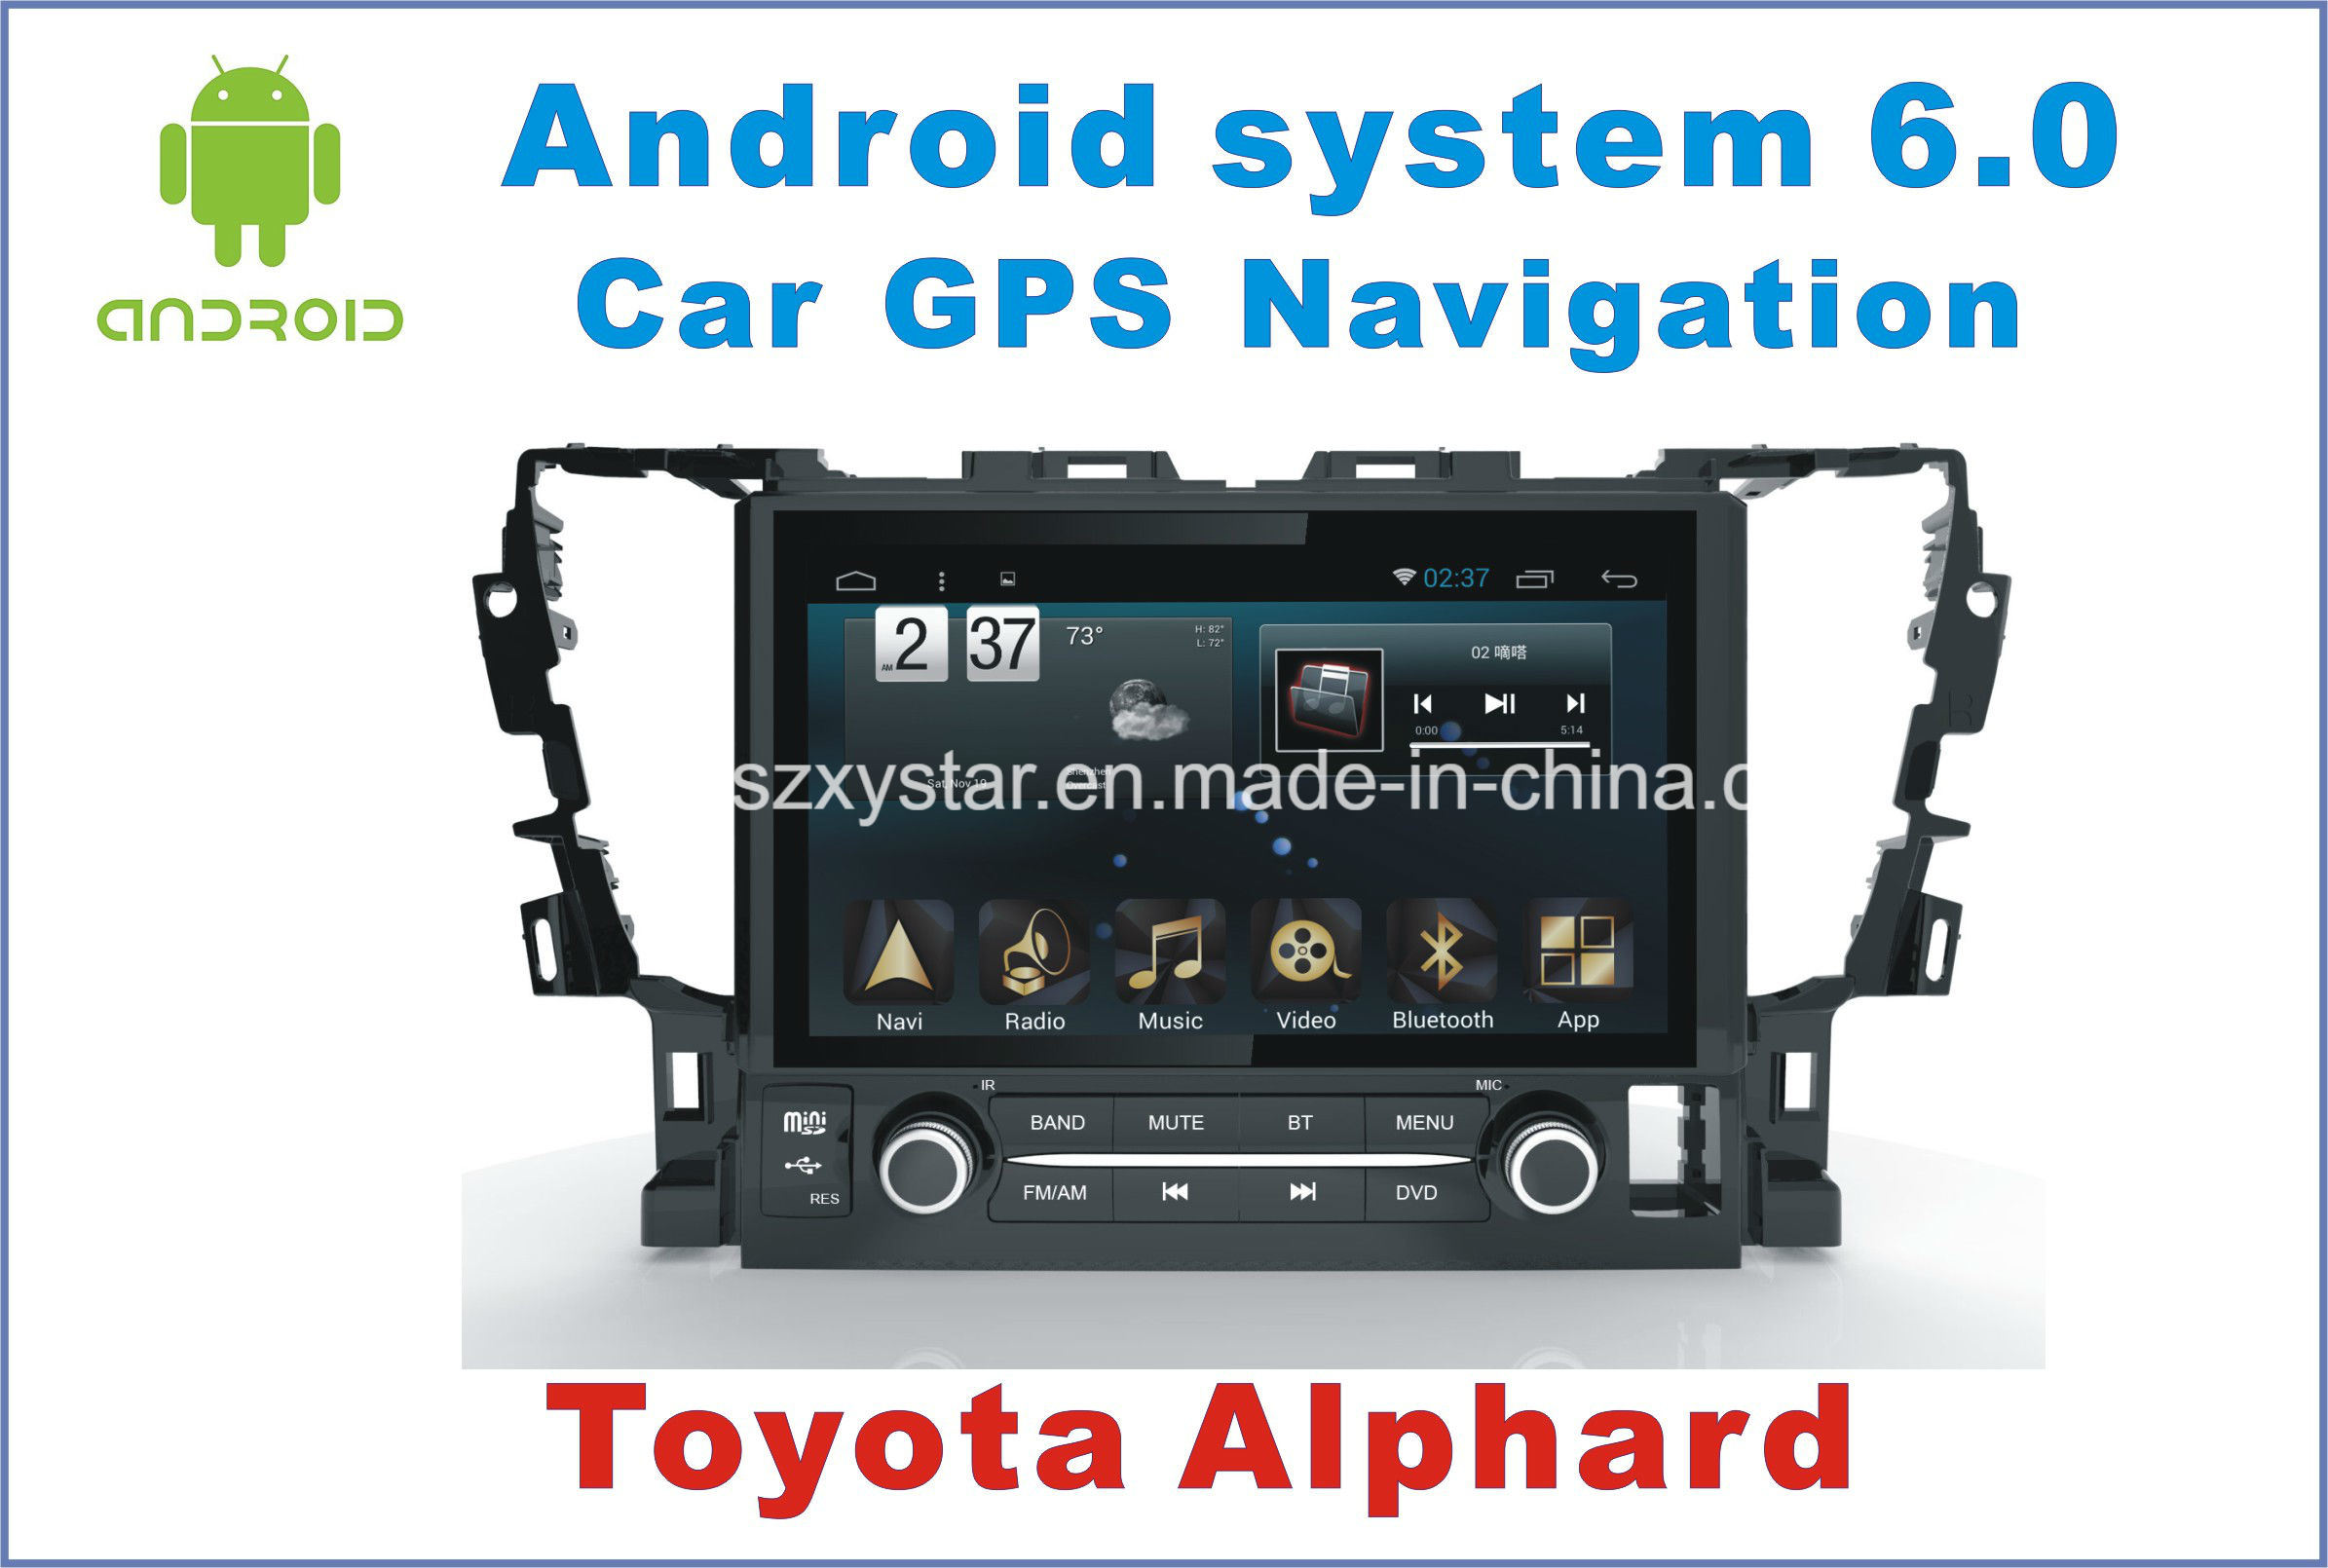 New Ui Android 6.0 Car GPS Navigation for Toyota Alphard 2015 with Car DVD Player